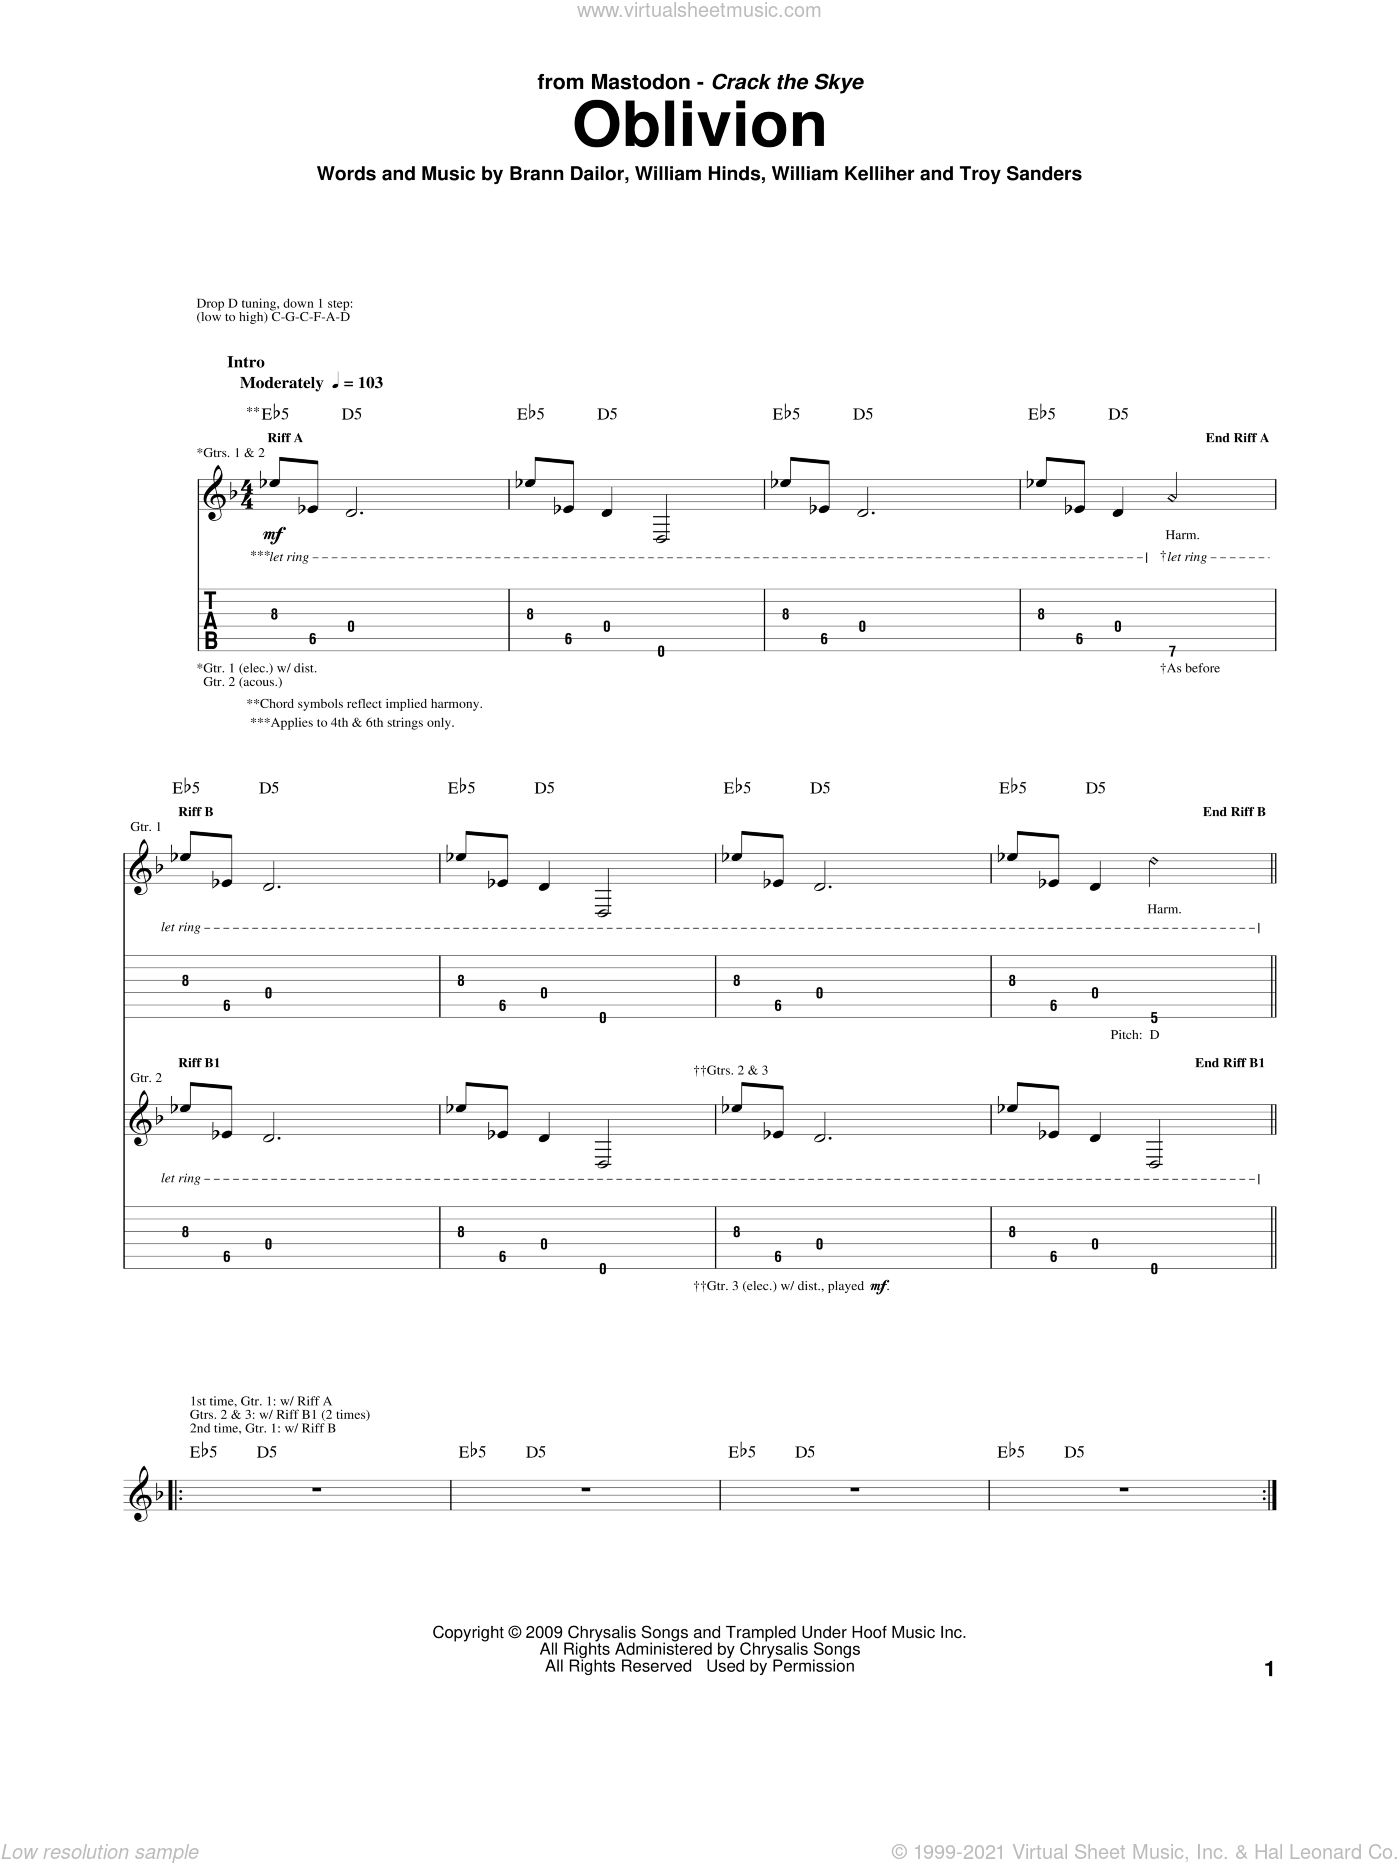 Oblivion sheet music for guitar (tablature) by William Kelliher, Mastodon and Troy Sanders. Score Image Preview.